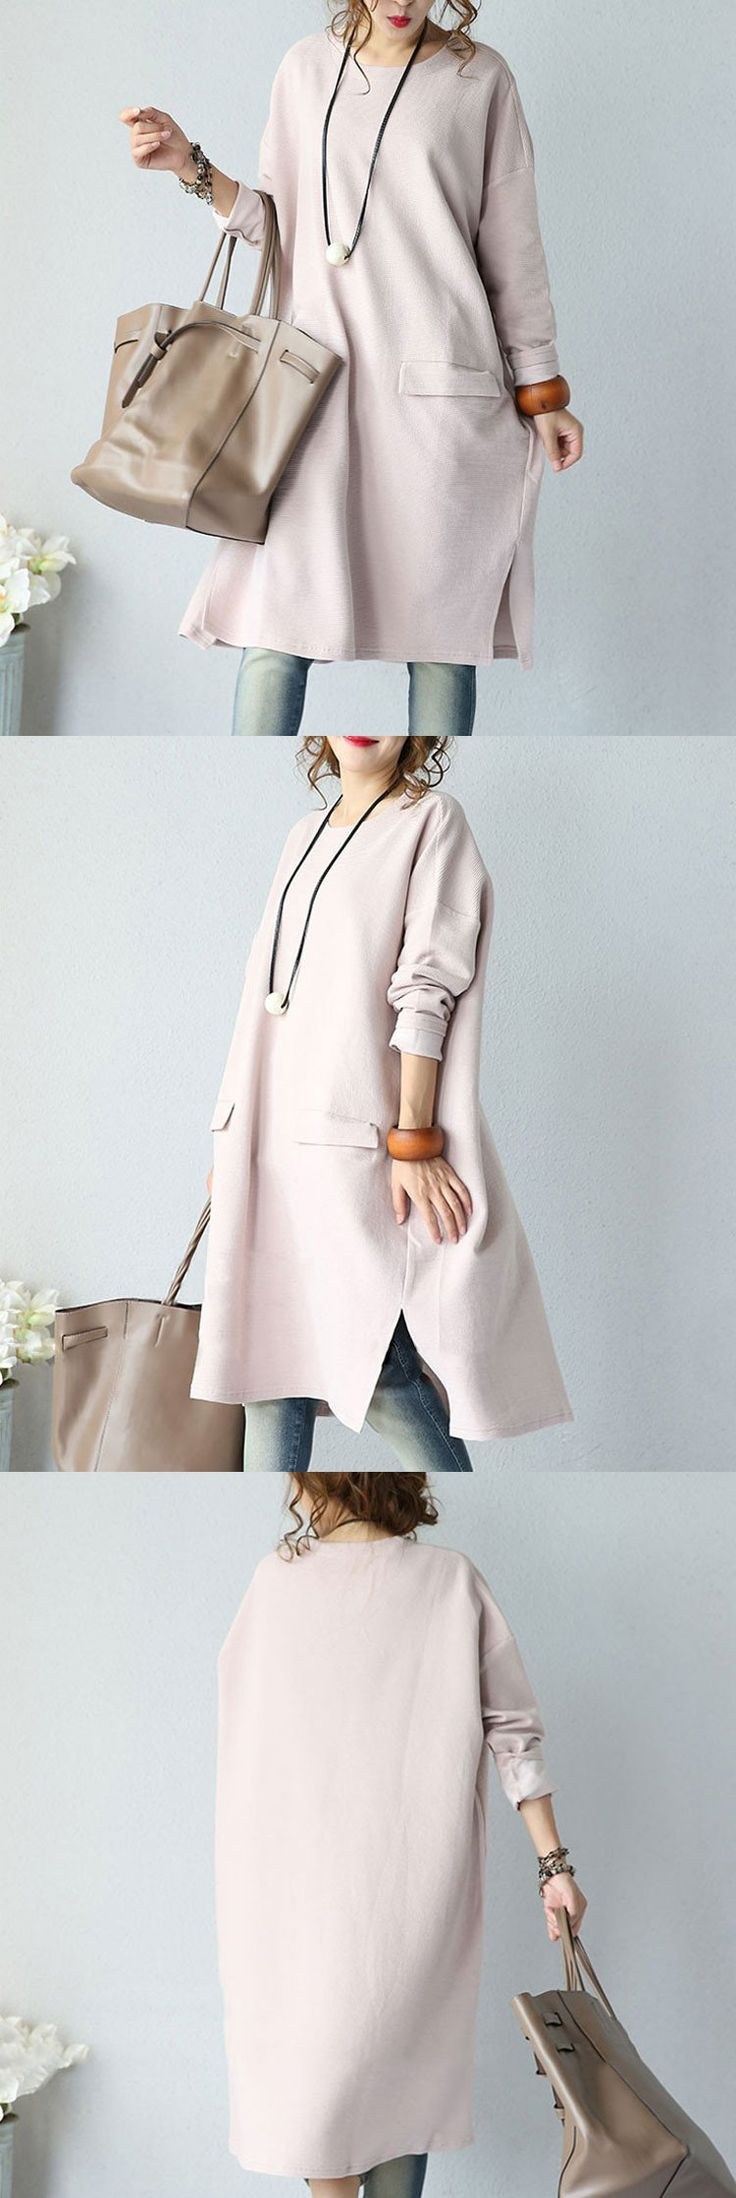 Pink Casual Round Neck Dress